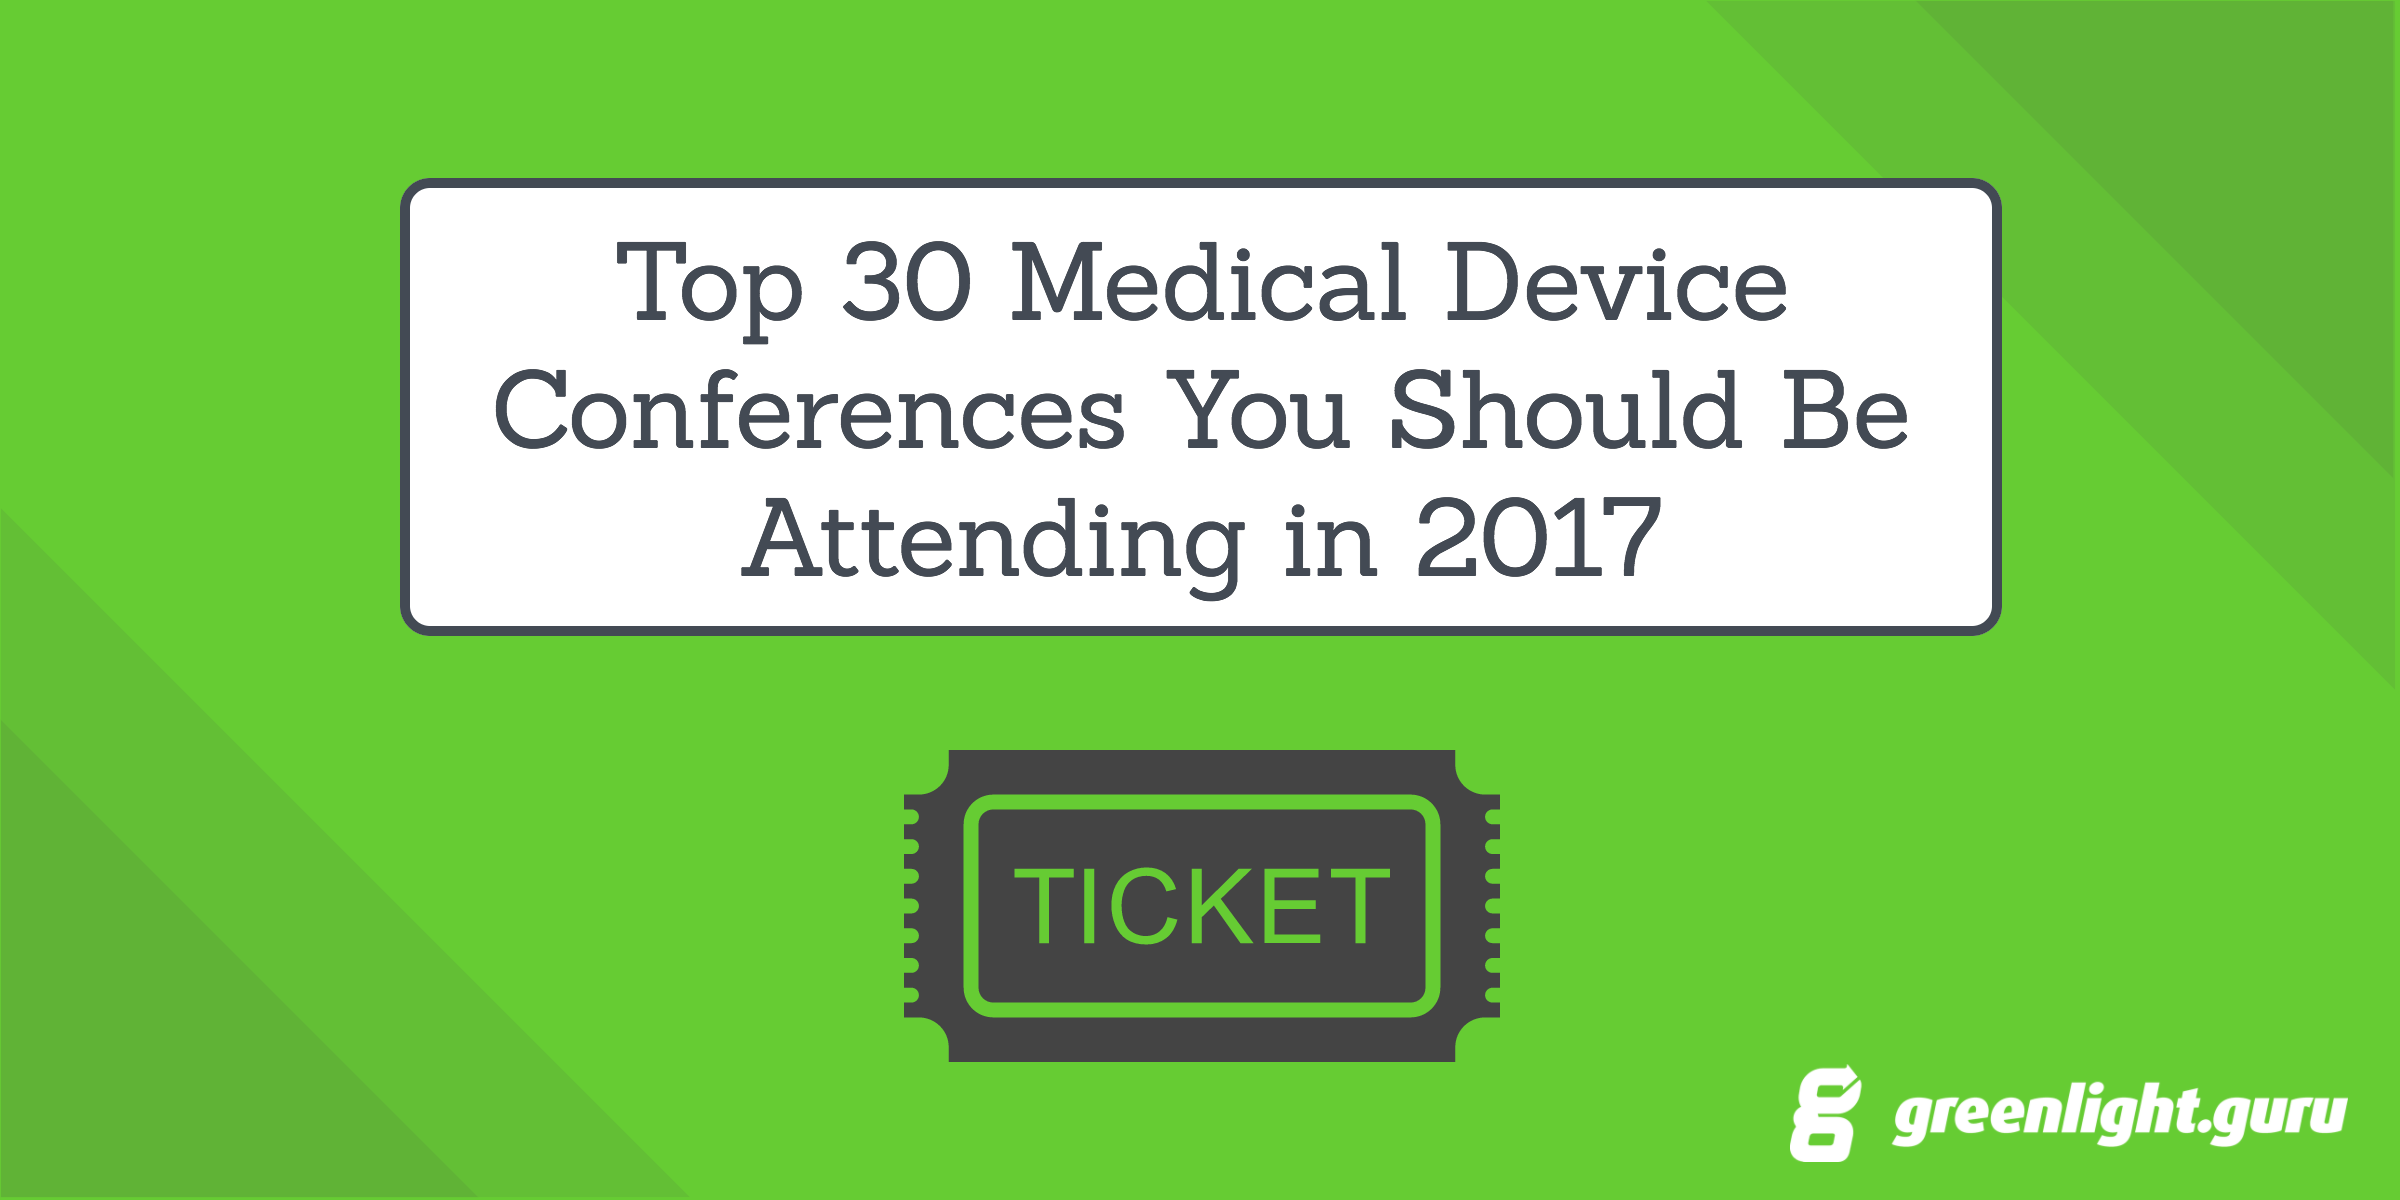 Top 30 Medical Device Conferences You Should Be Attending in 2017 - Featured Image